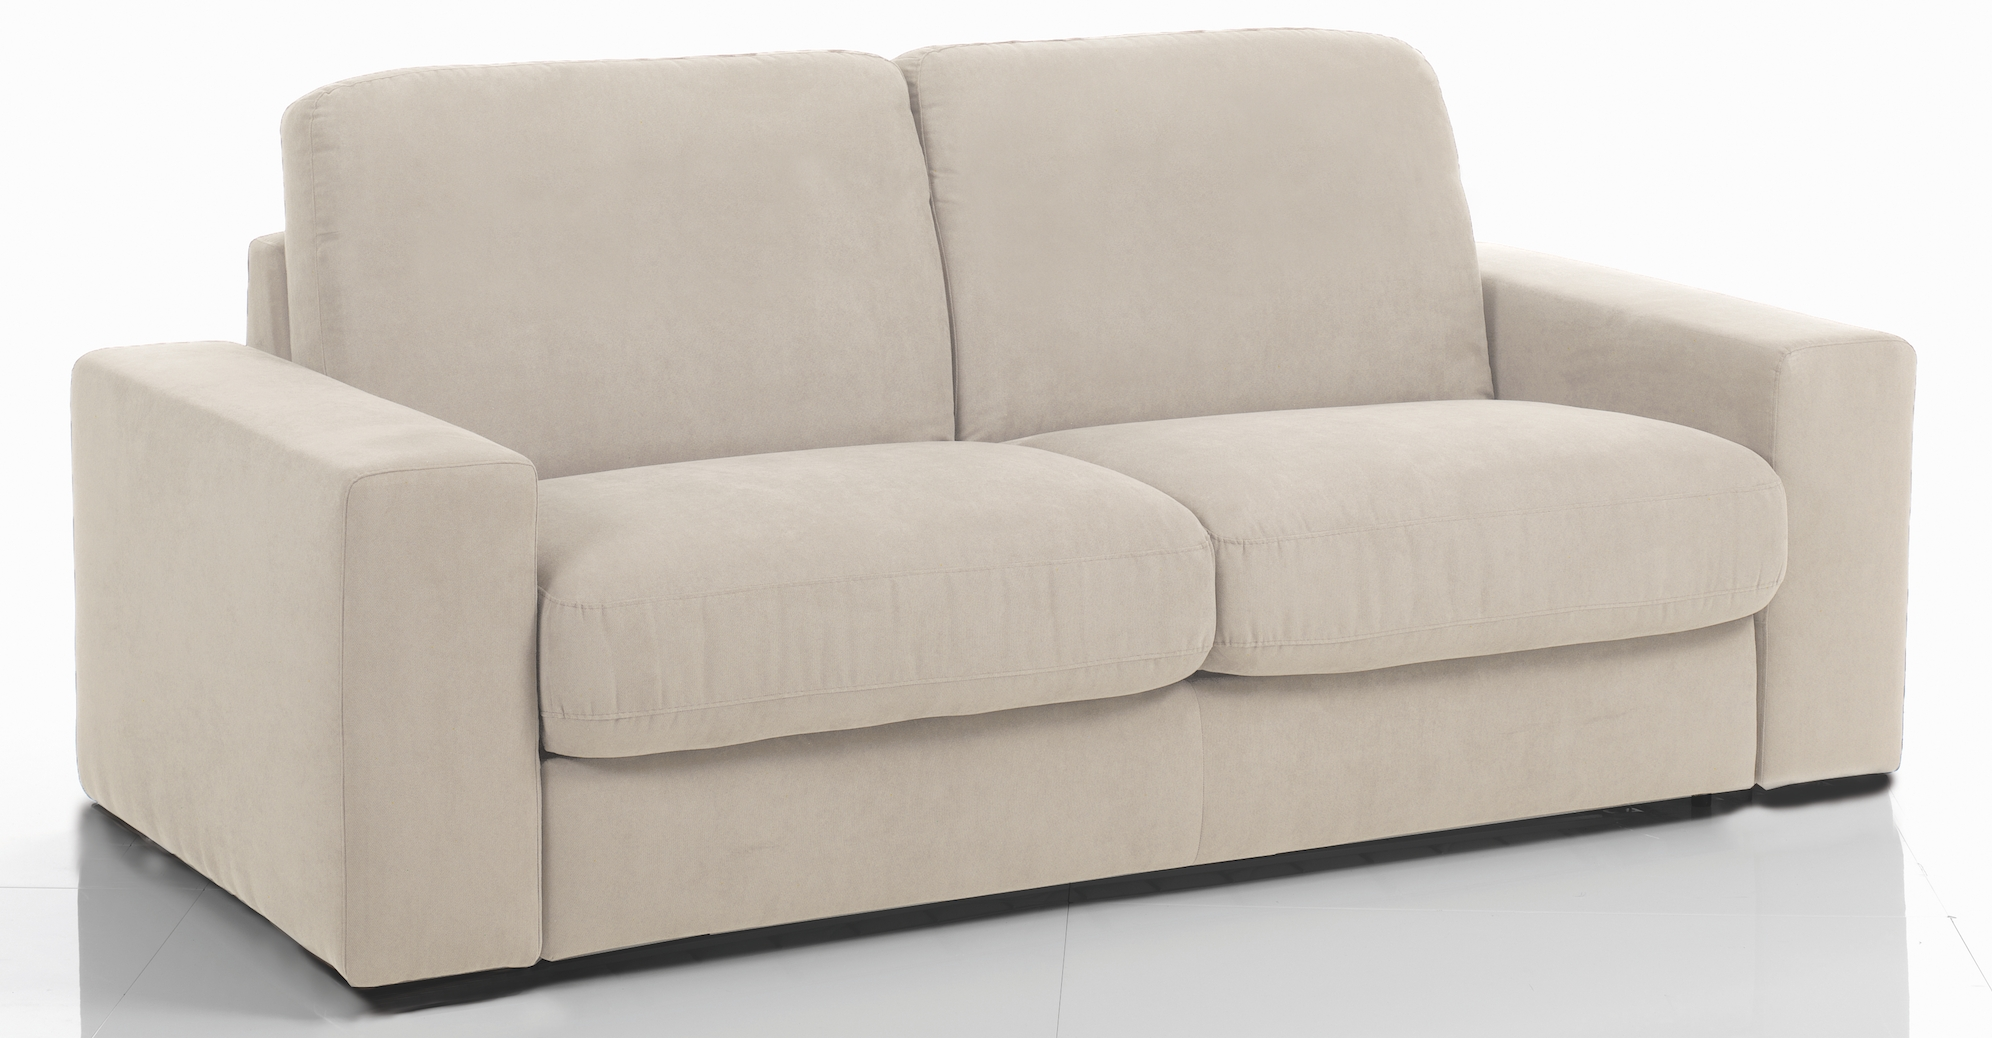 Canap lit beige royal sofa id e de canap et meuble for Site de canape